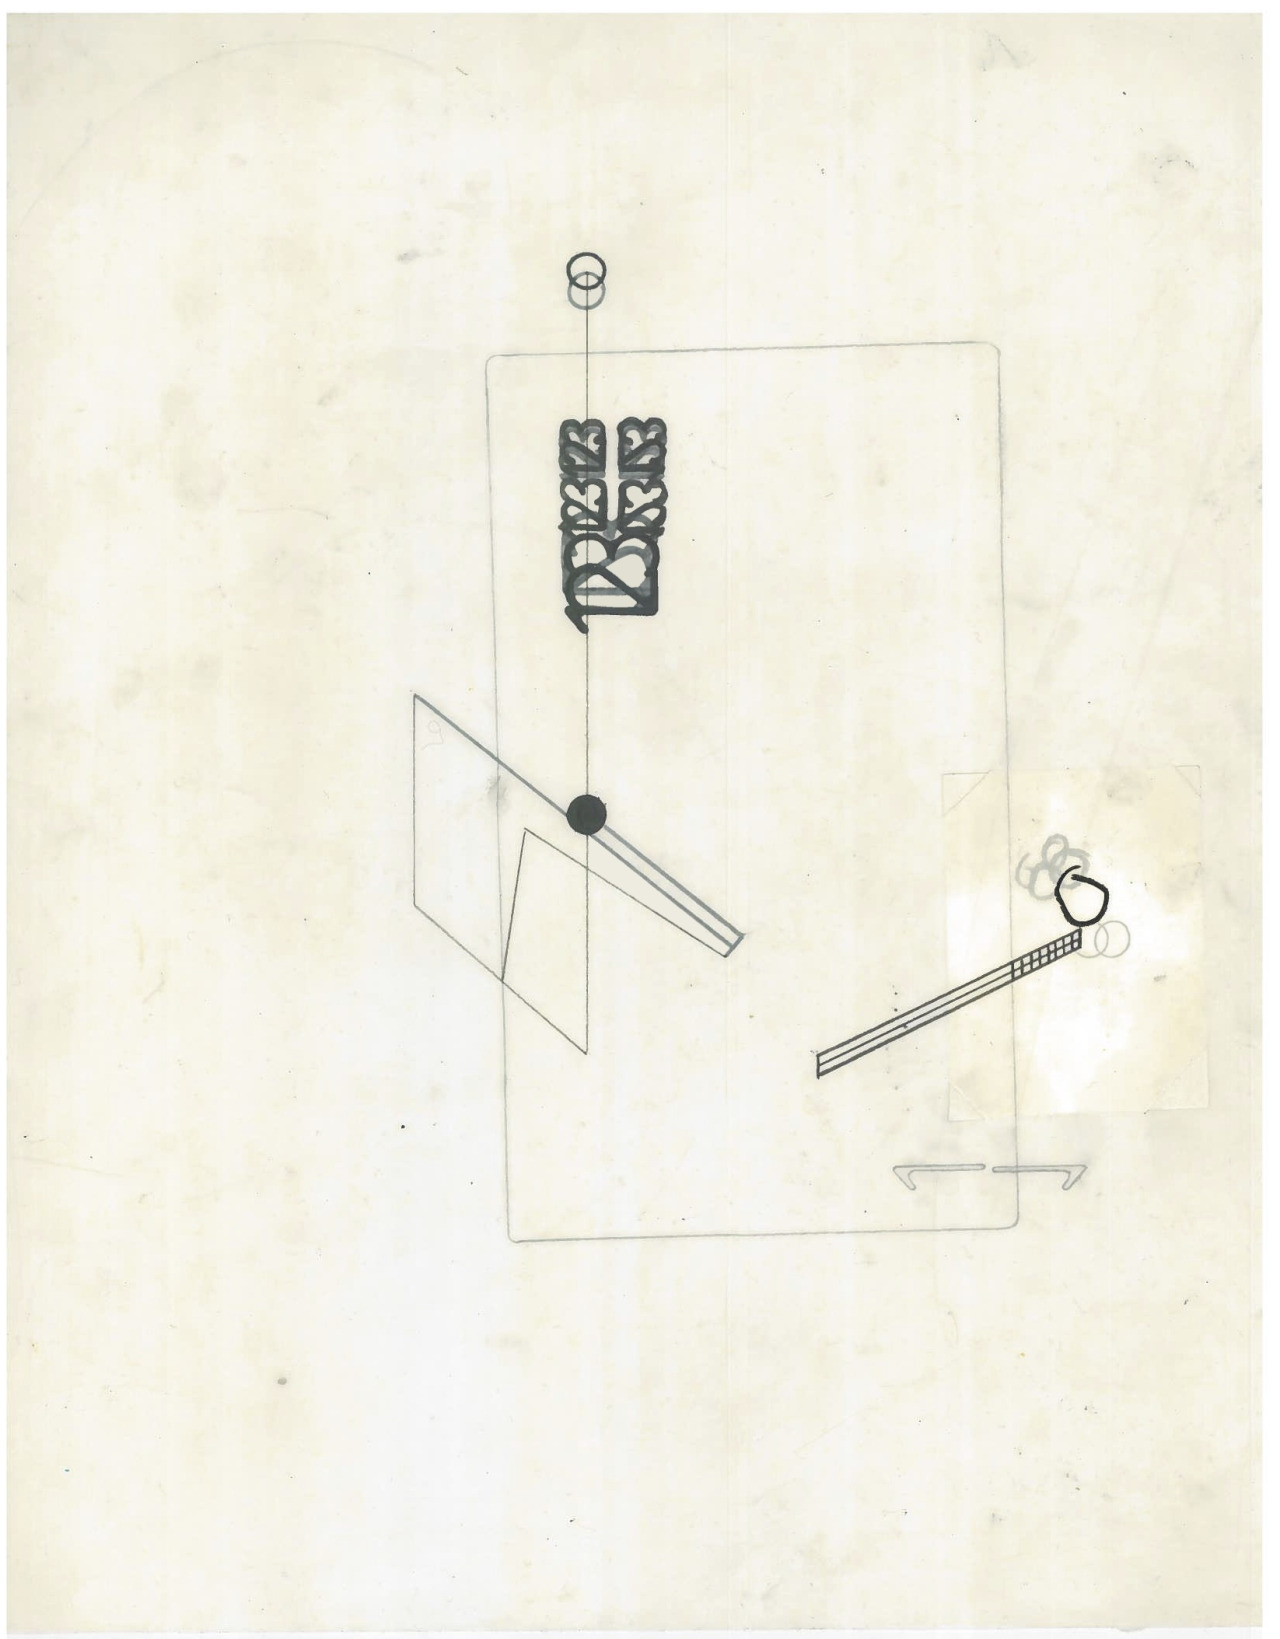 Untitled (the city, observations 19B)  Pencil and collage on layered oiled fabriano paper  279mm x 216mm  December 2013